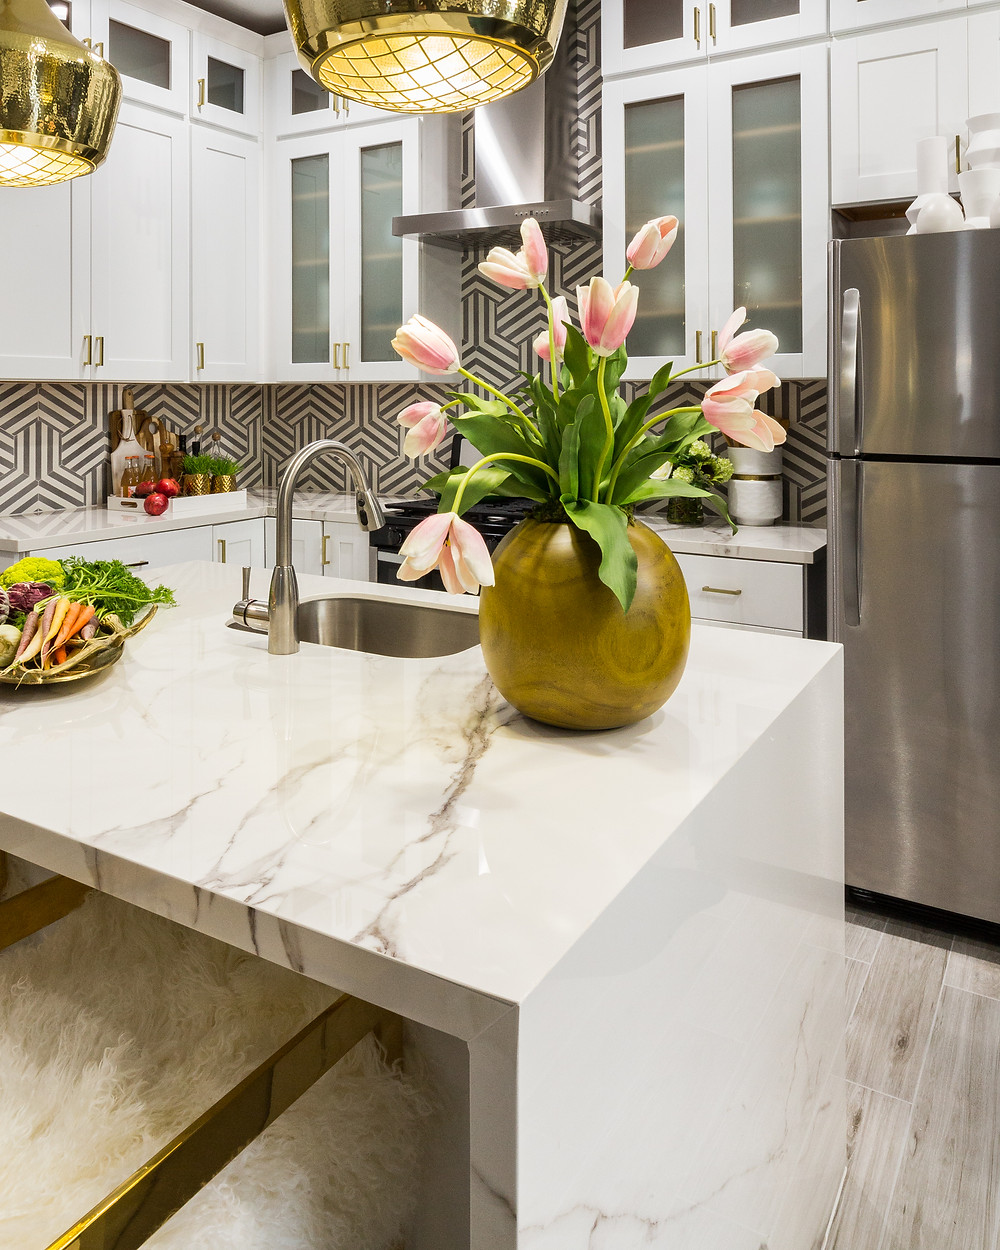 Kitchen designed by Veronica Solomon